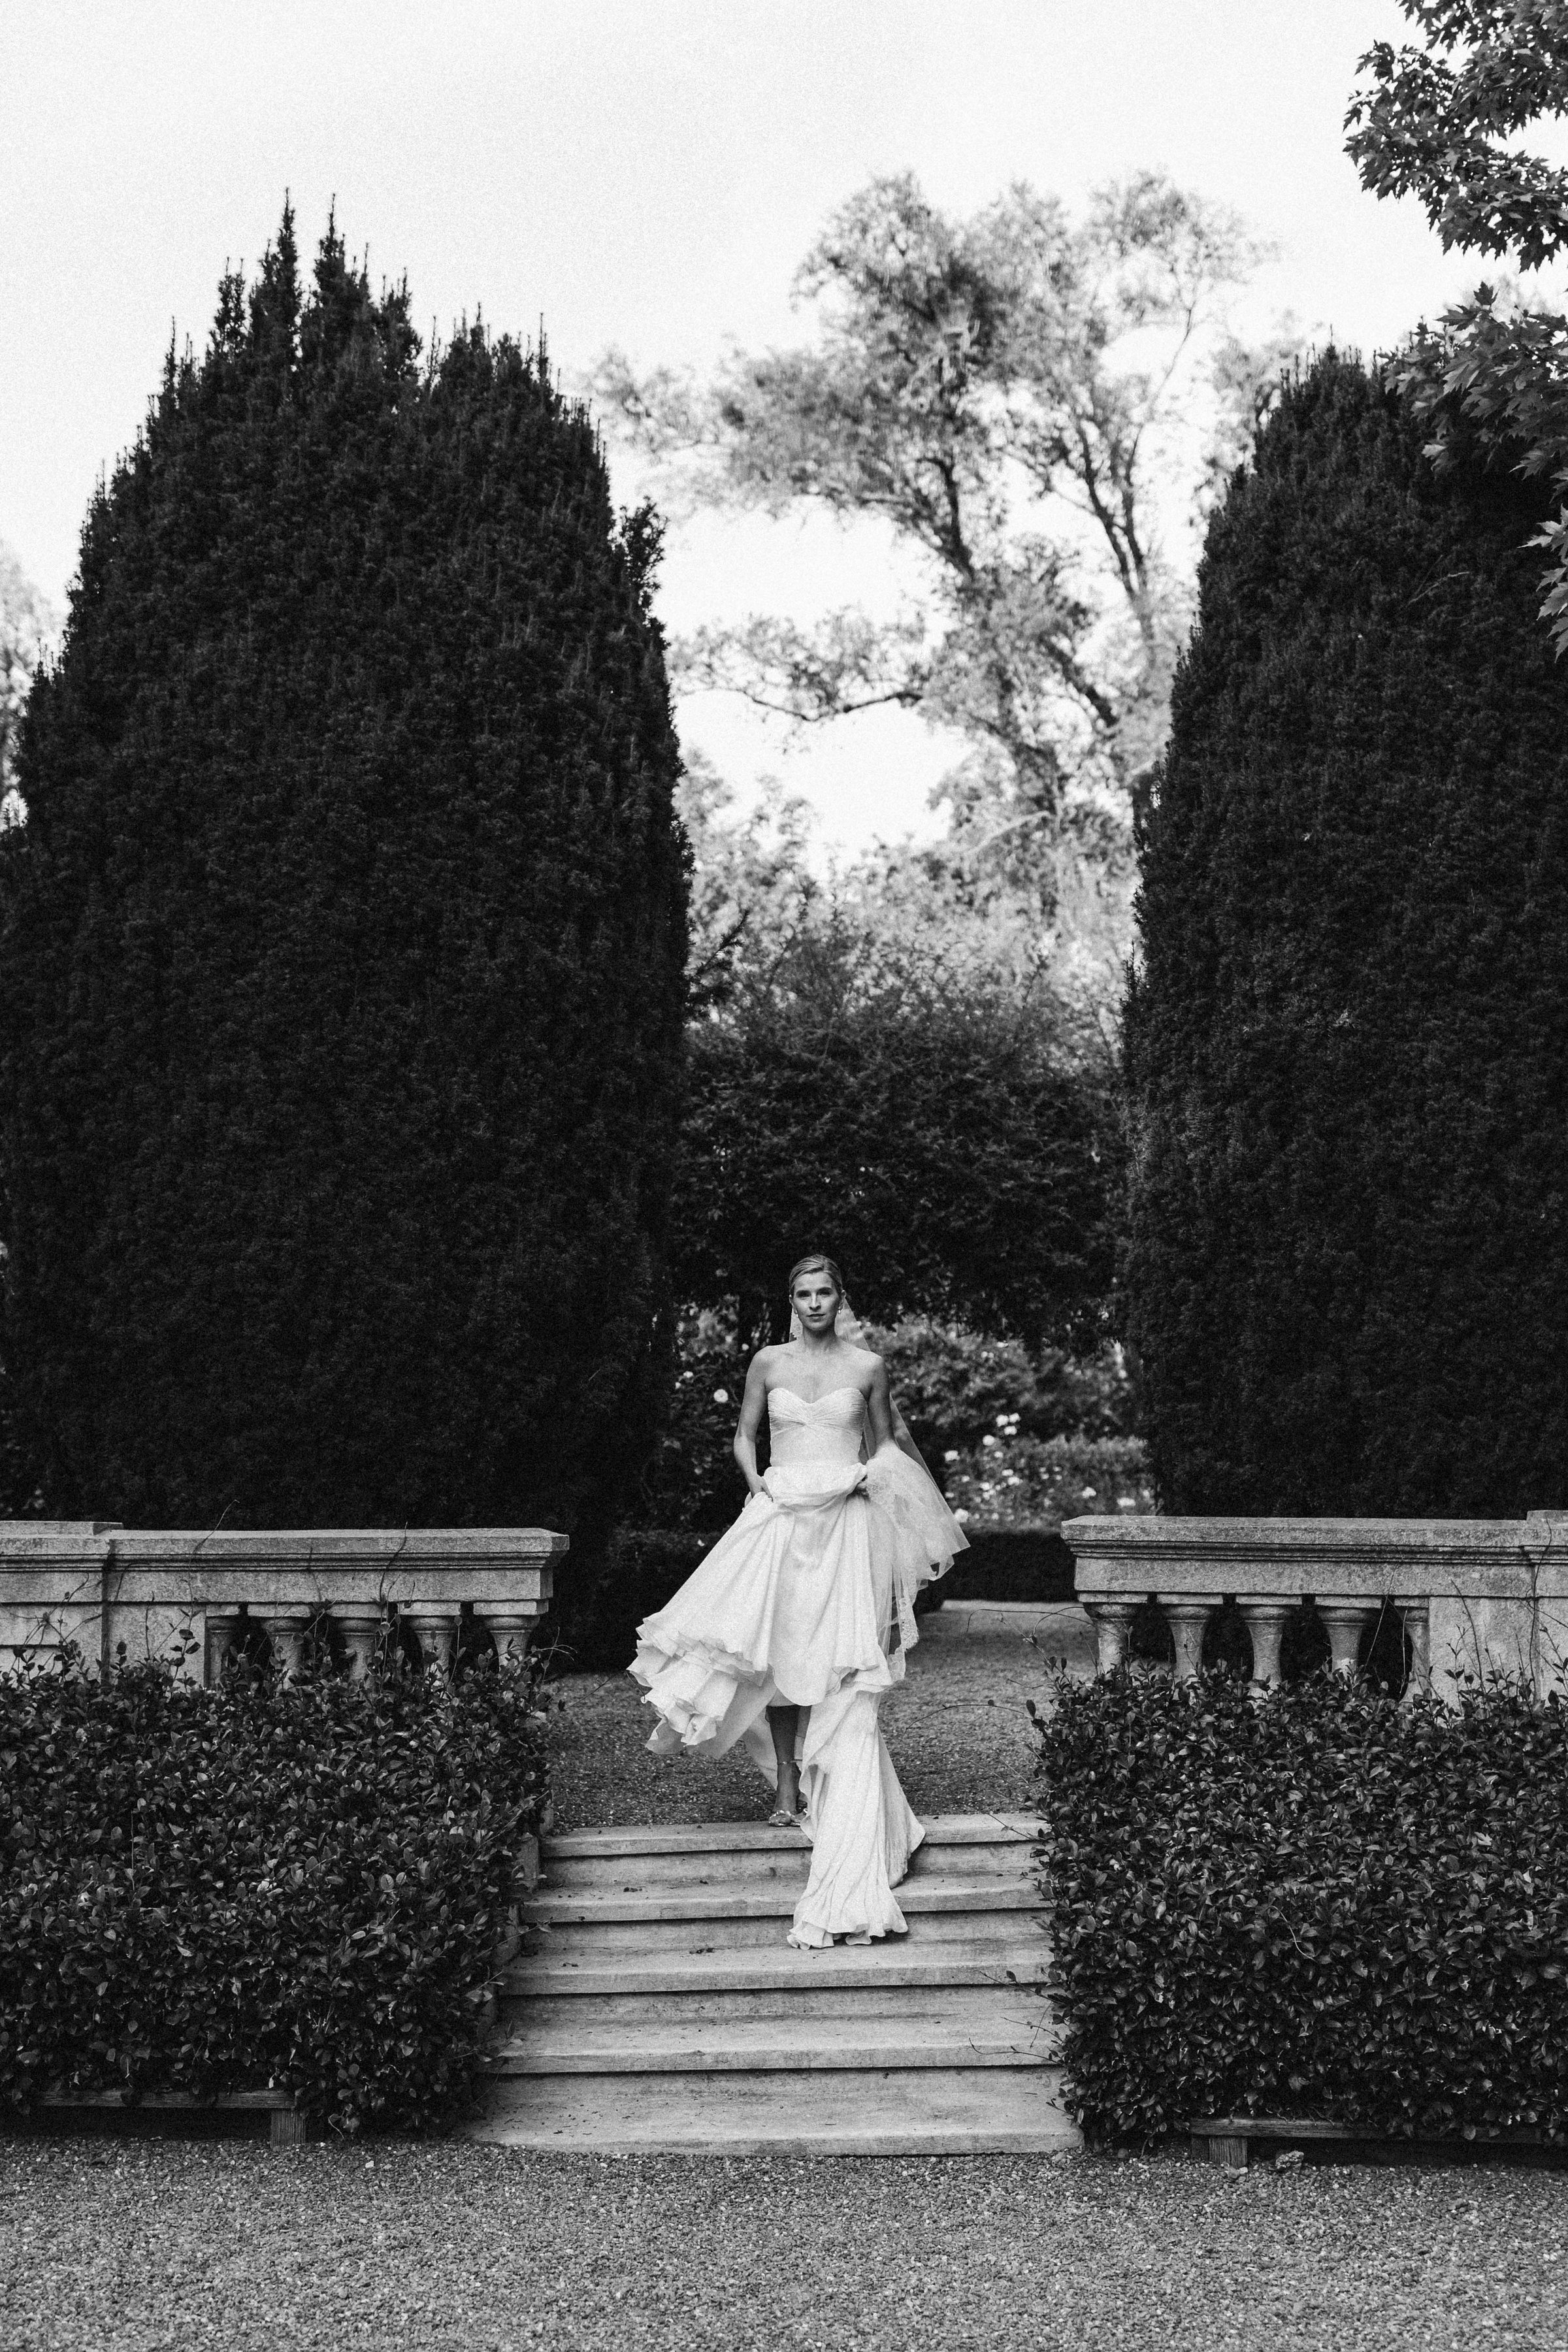 timeless black and white wedding photography from top wedding photographer Sarah Falugo at a Napa Valley Wedding